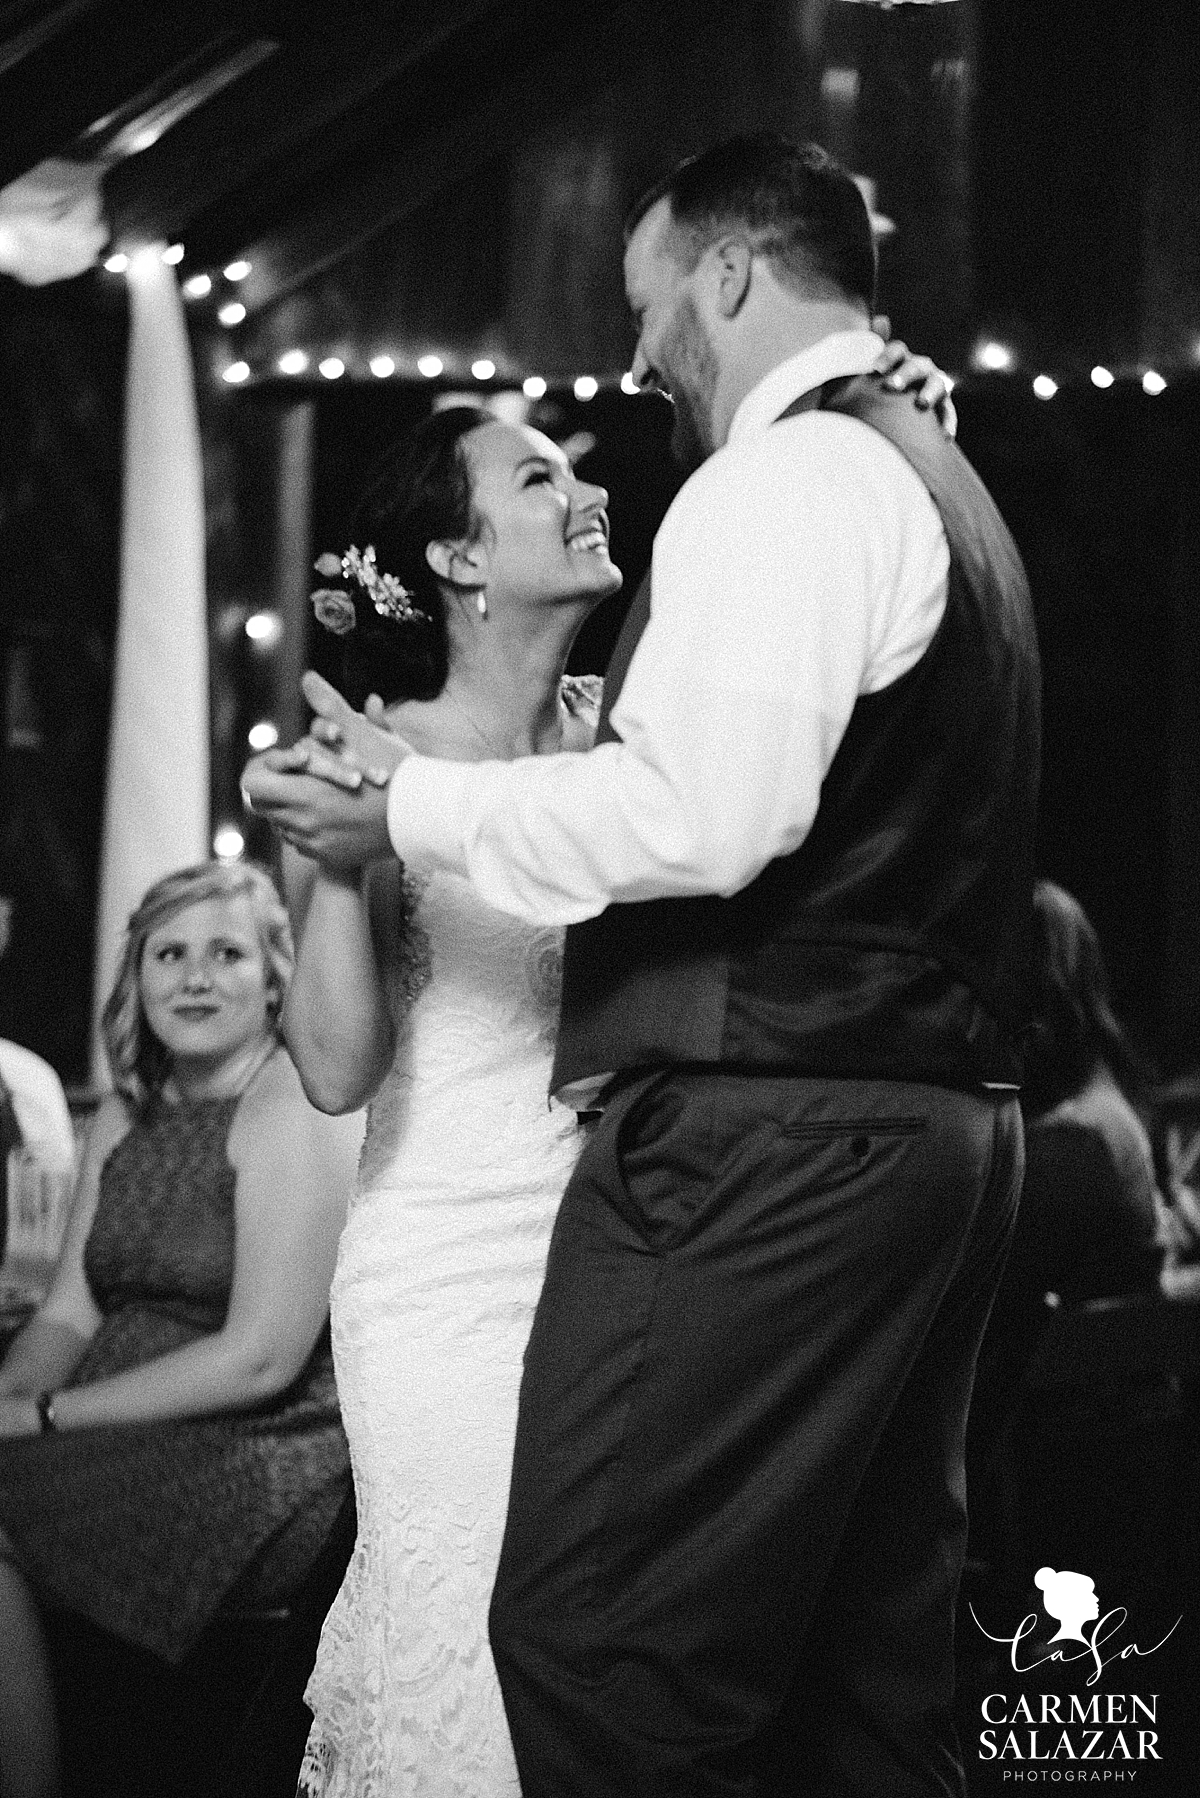 Bride and groom's first dance - Carmen Salazar